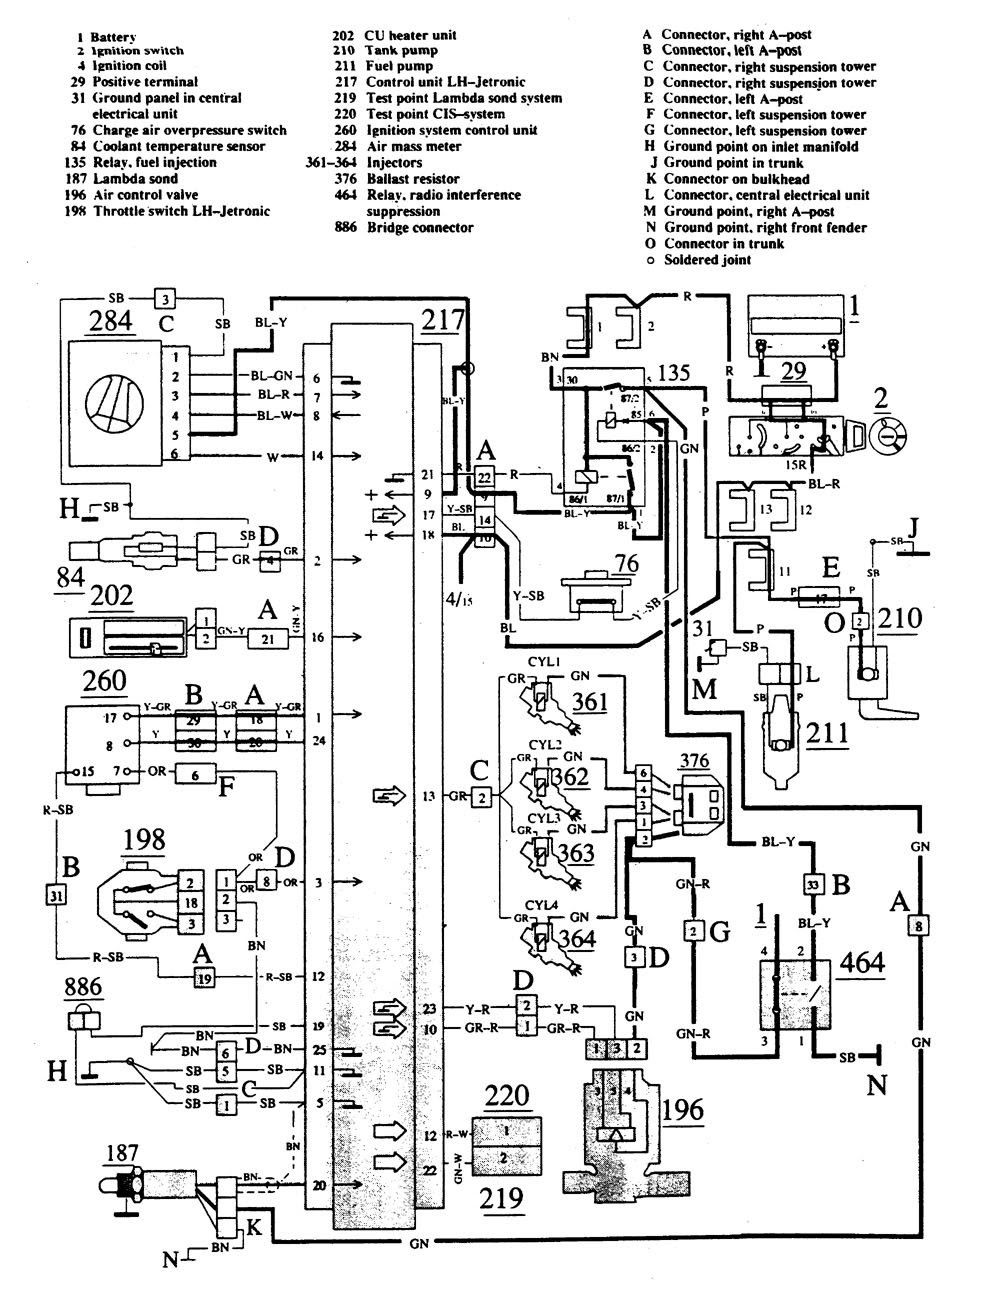 Diagram 1991 Volvo 240 Fuse Diagram Full Version Hd Quality Fuse Diagram Oilschematics1j Romaindanza It